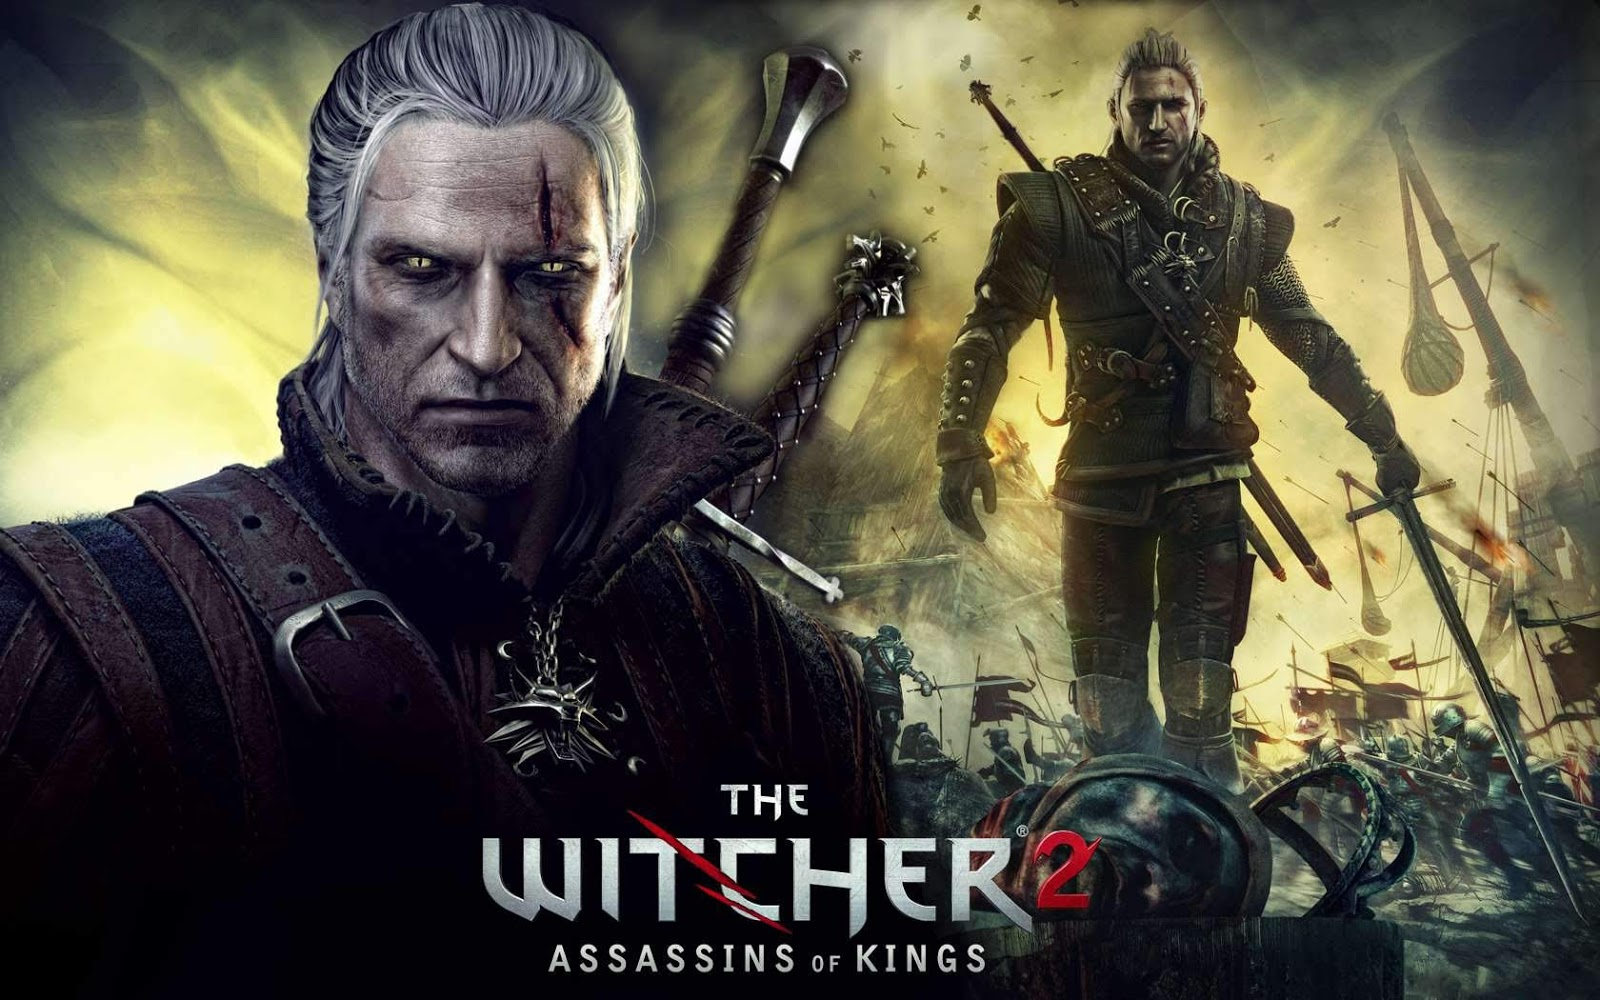 the-witcher-2-assassins-of-kings-viet-hoa